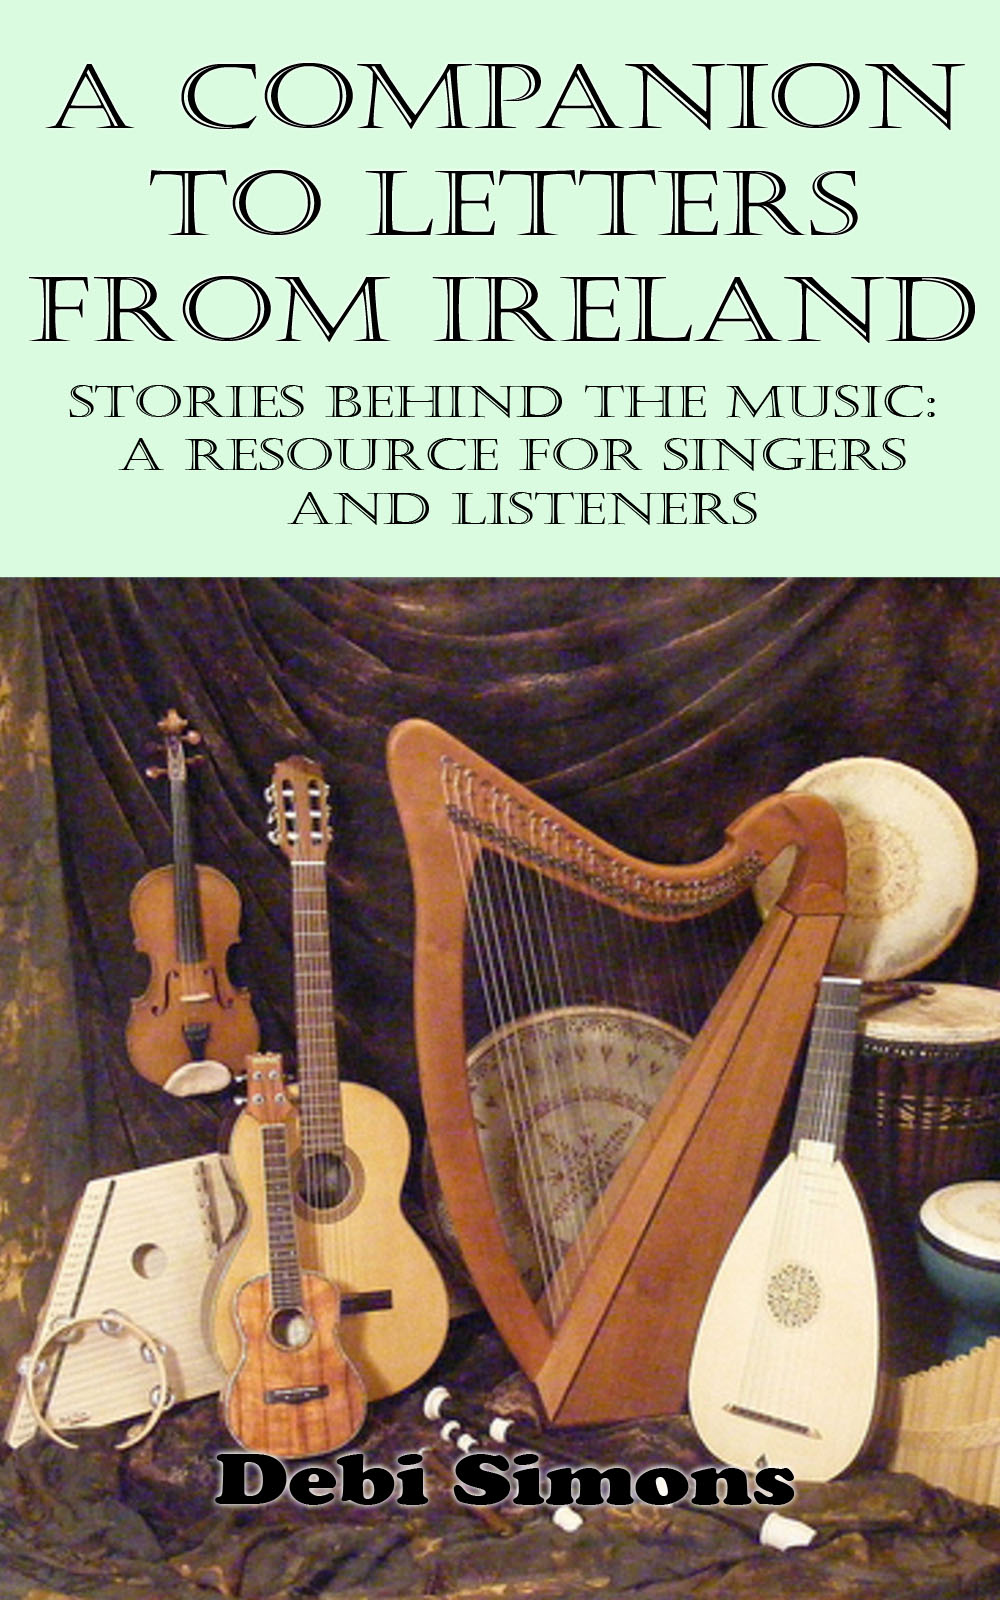 Cover of A Companion to Letters from Ireland, showing a picture of stringed instruments